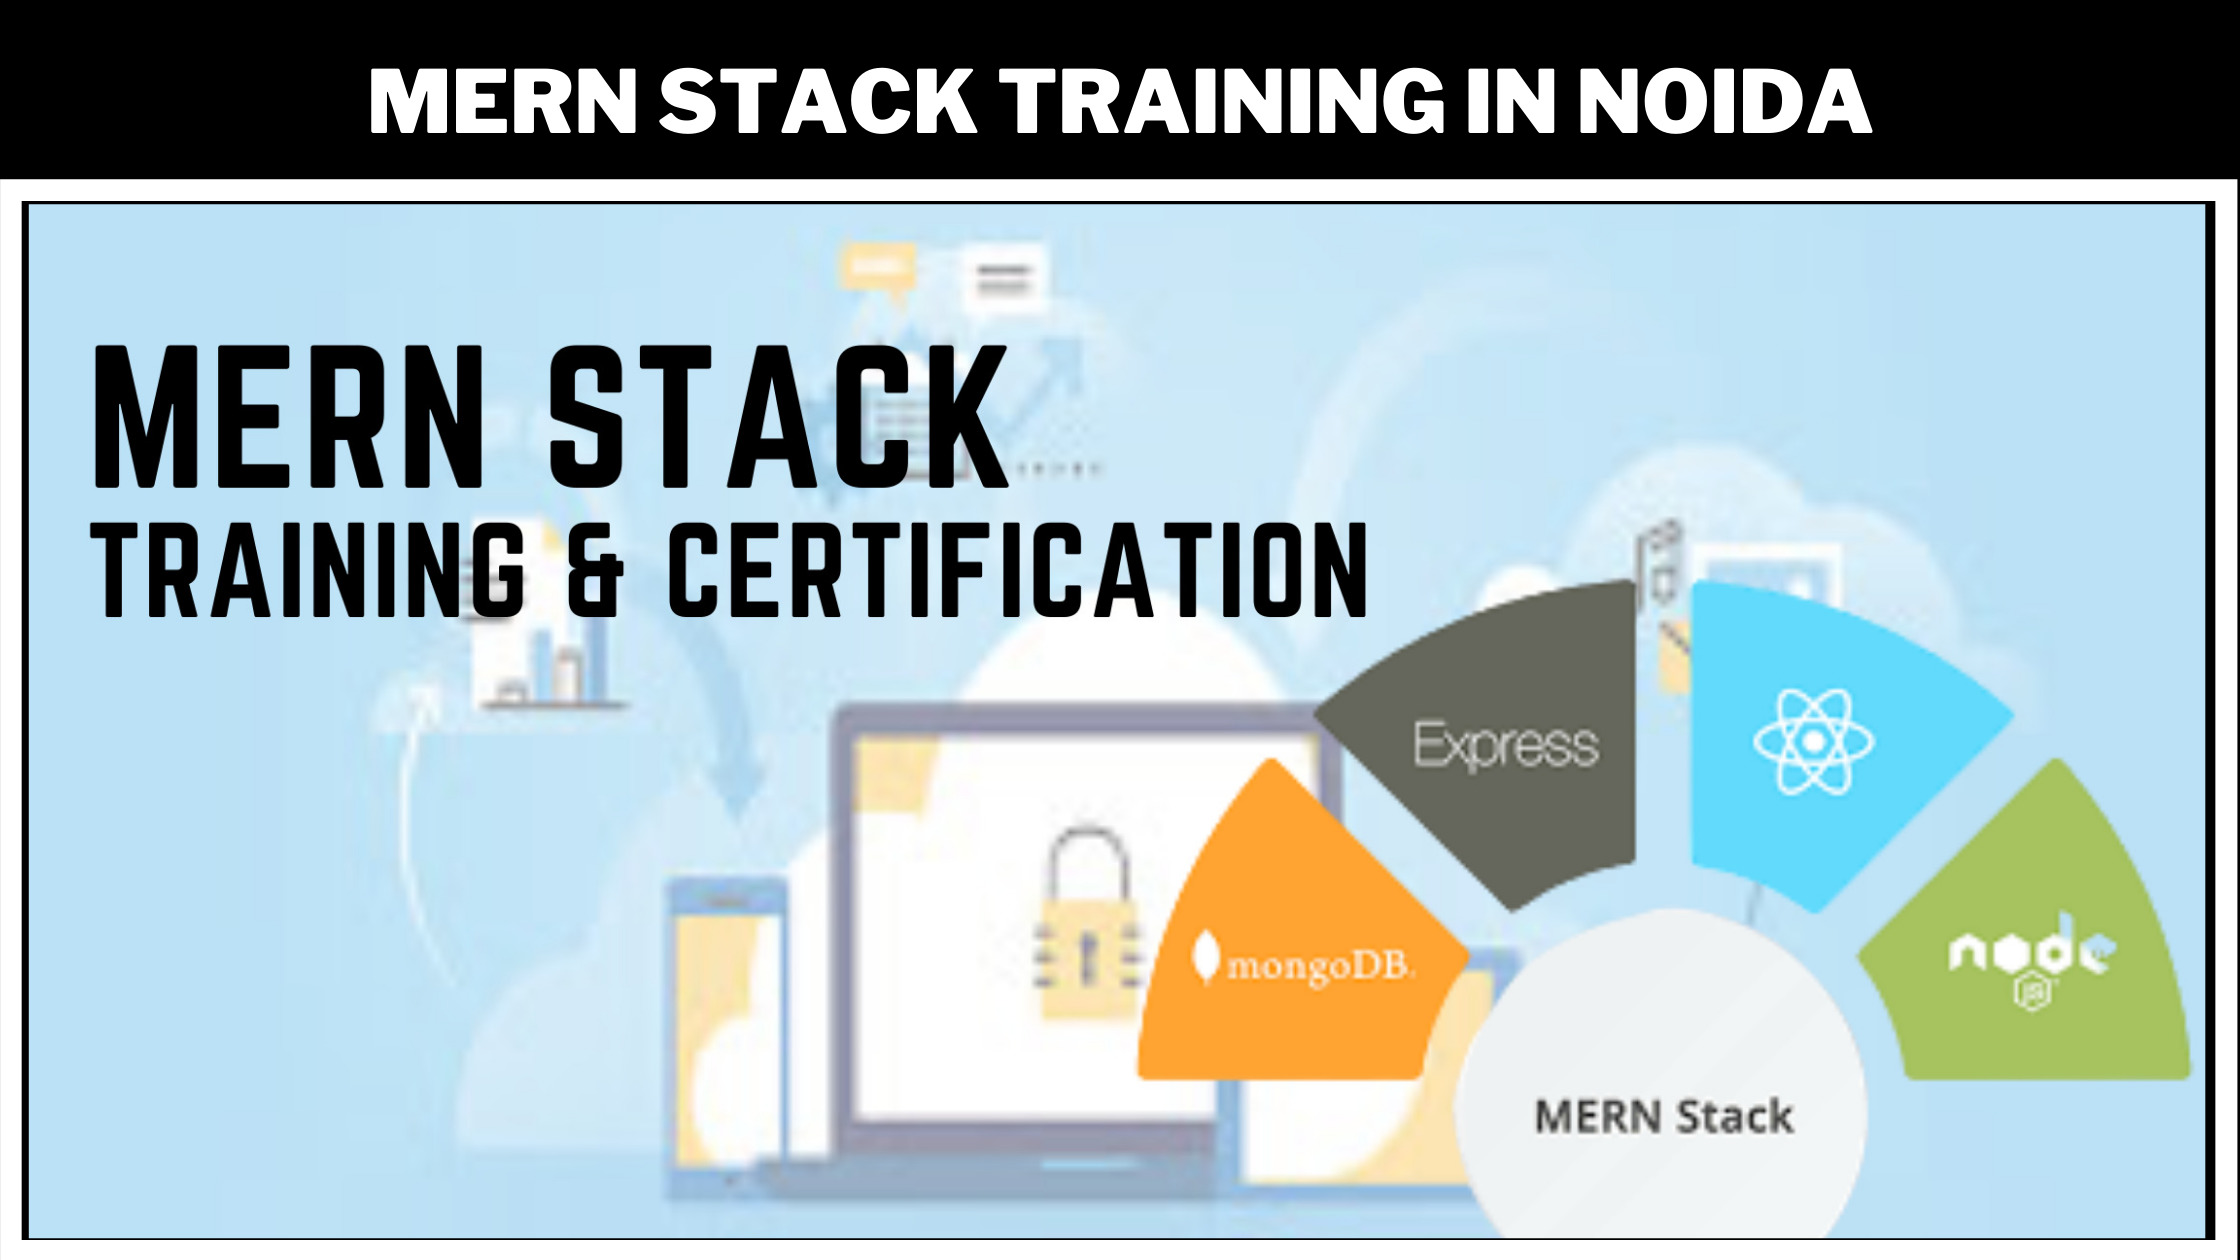 mern_stack_training_in_noida-background.jpeg